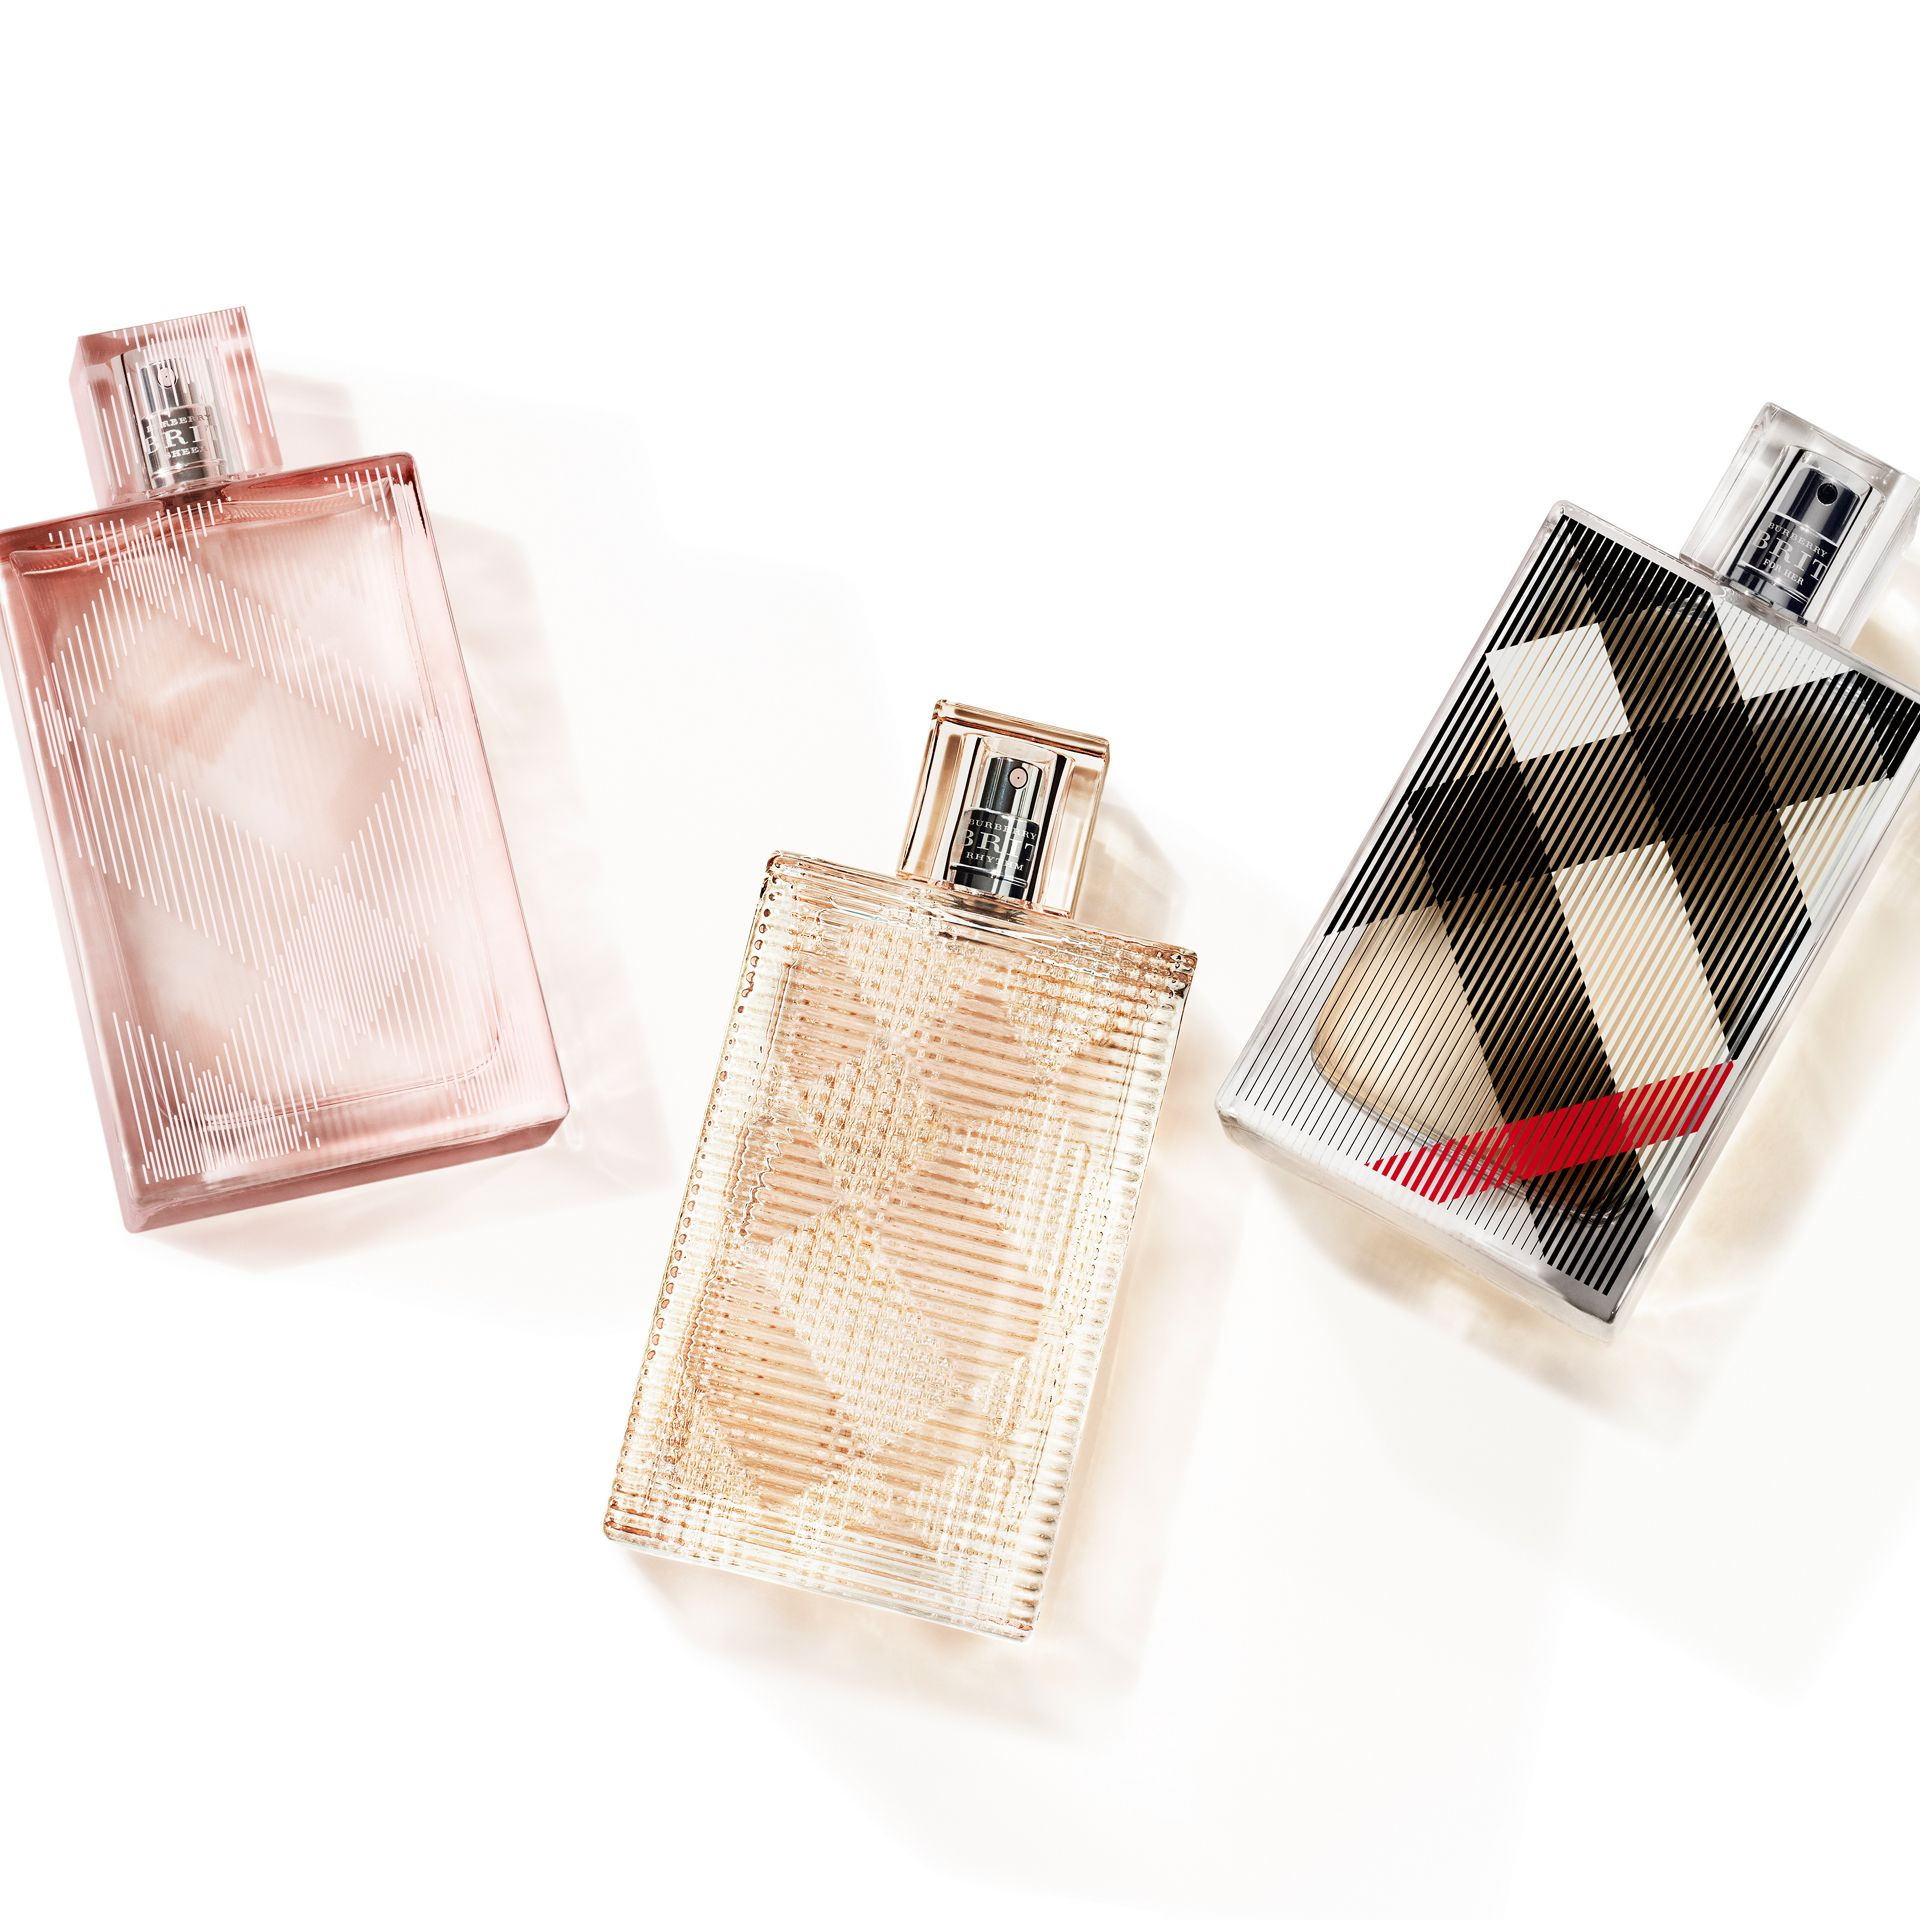 Burberry Brit Sheer 淡香水 200ml - 女款 | Burberry - 圖庫照片 3